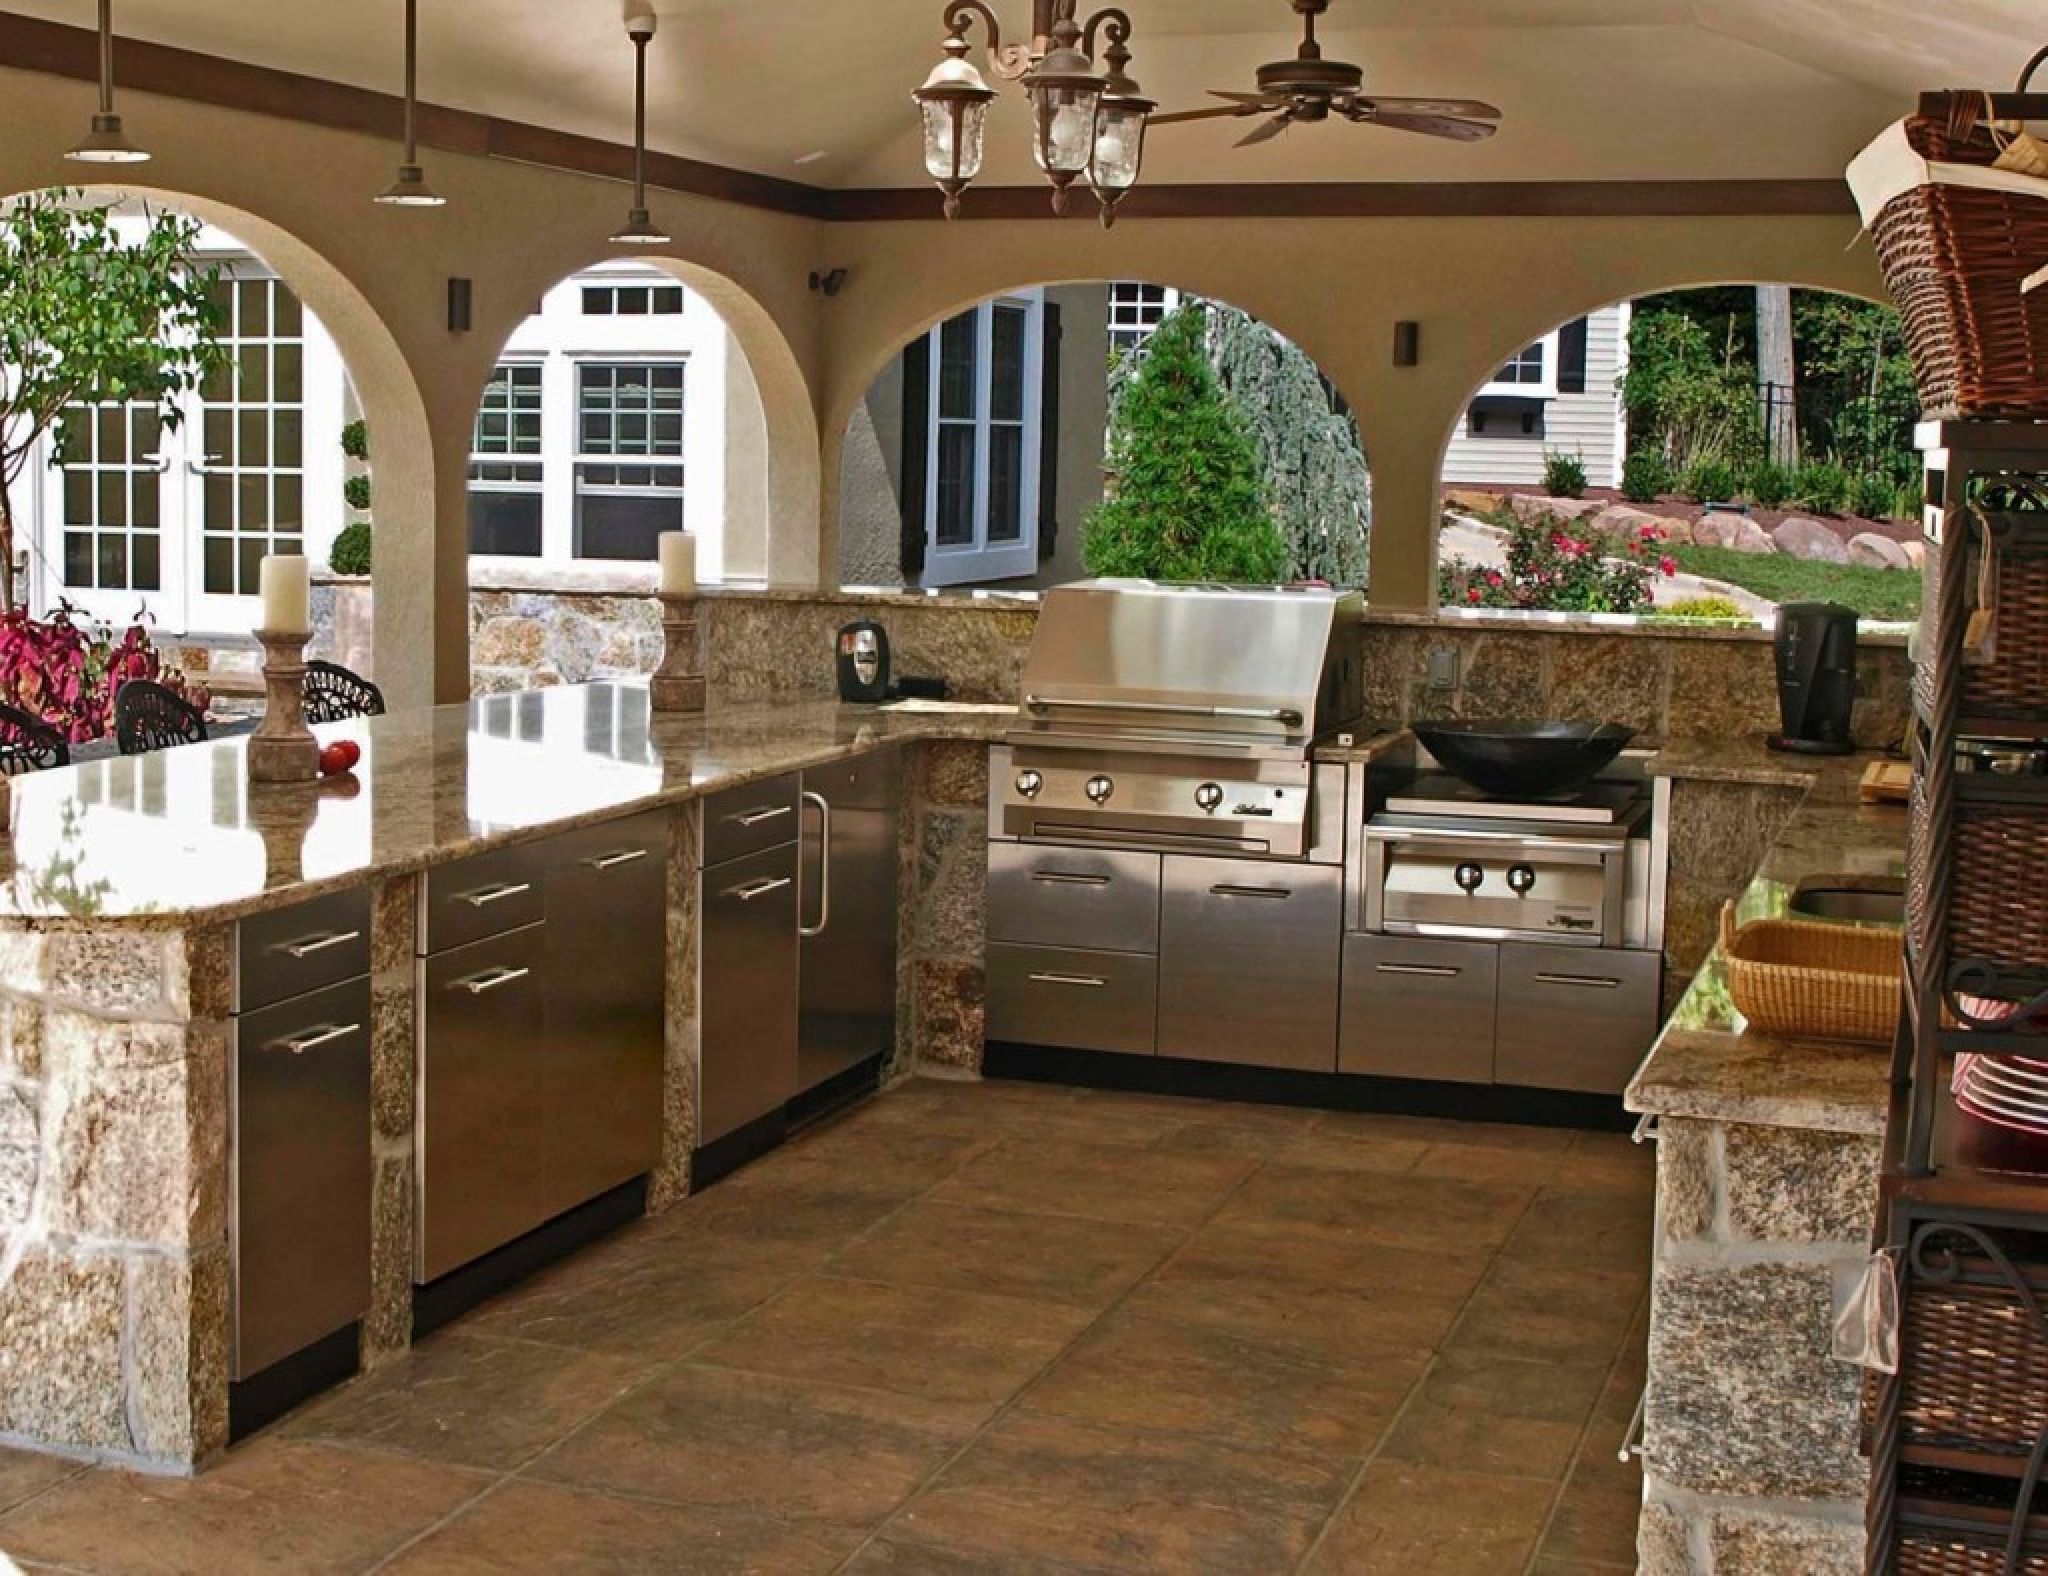 stainless steel outdoor kitchen cabinets - interior house paint ...